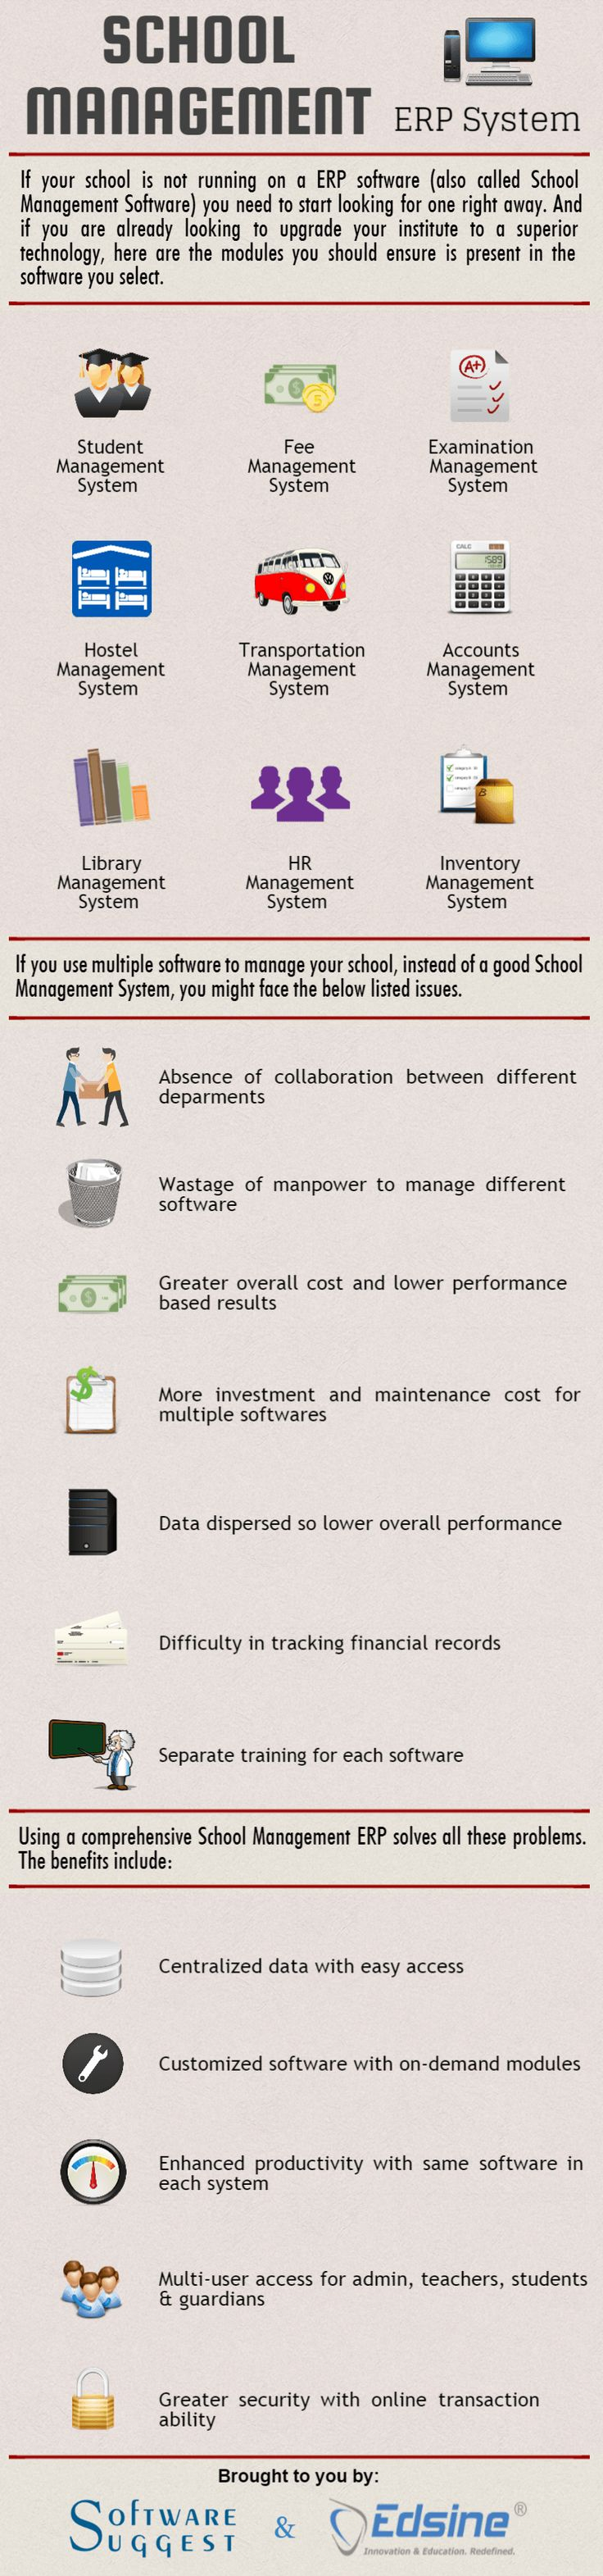 And selecting the right #school management #software is as important as selecting one. Here is an #infographic made by our School Management Software Analyst to help you select the right solution.